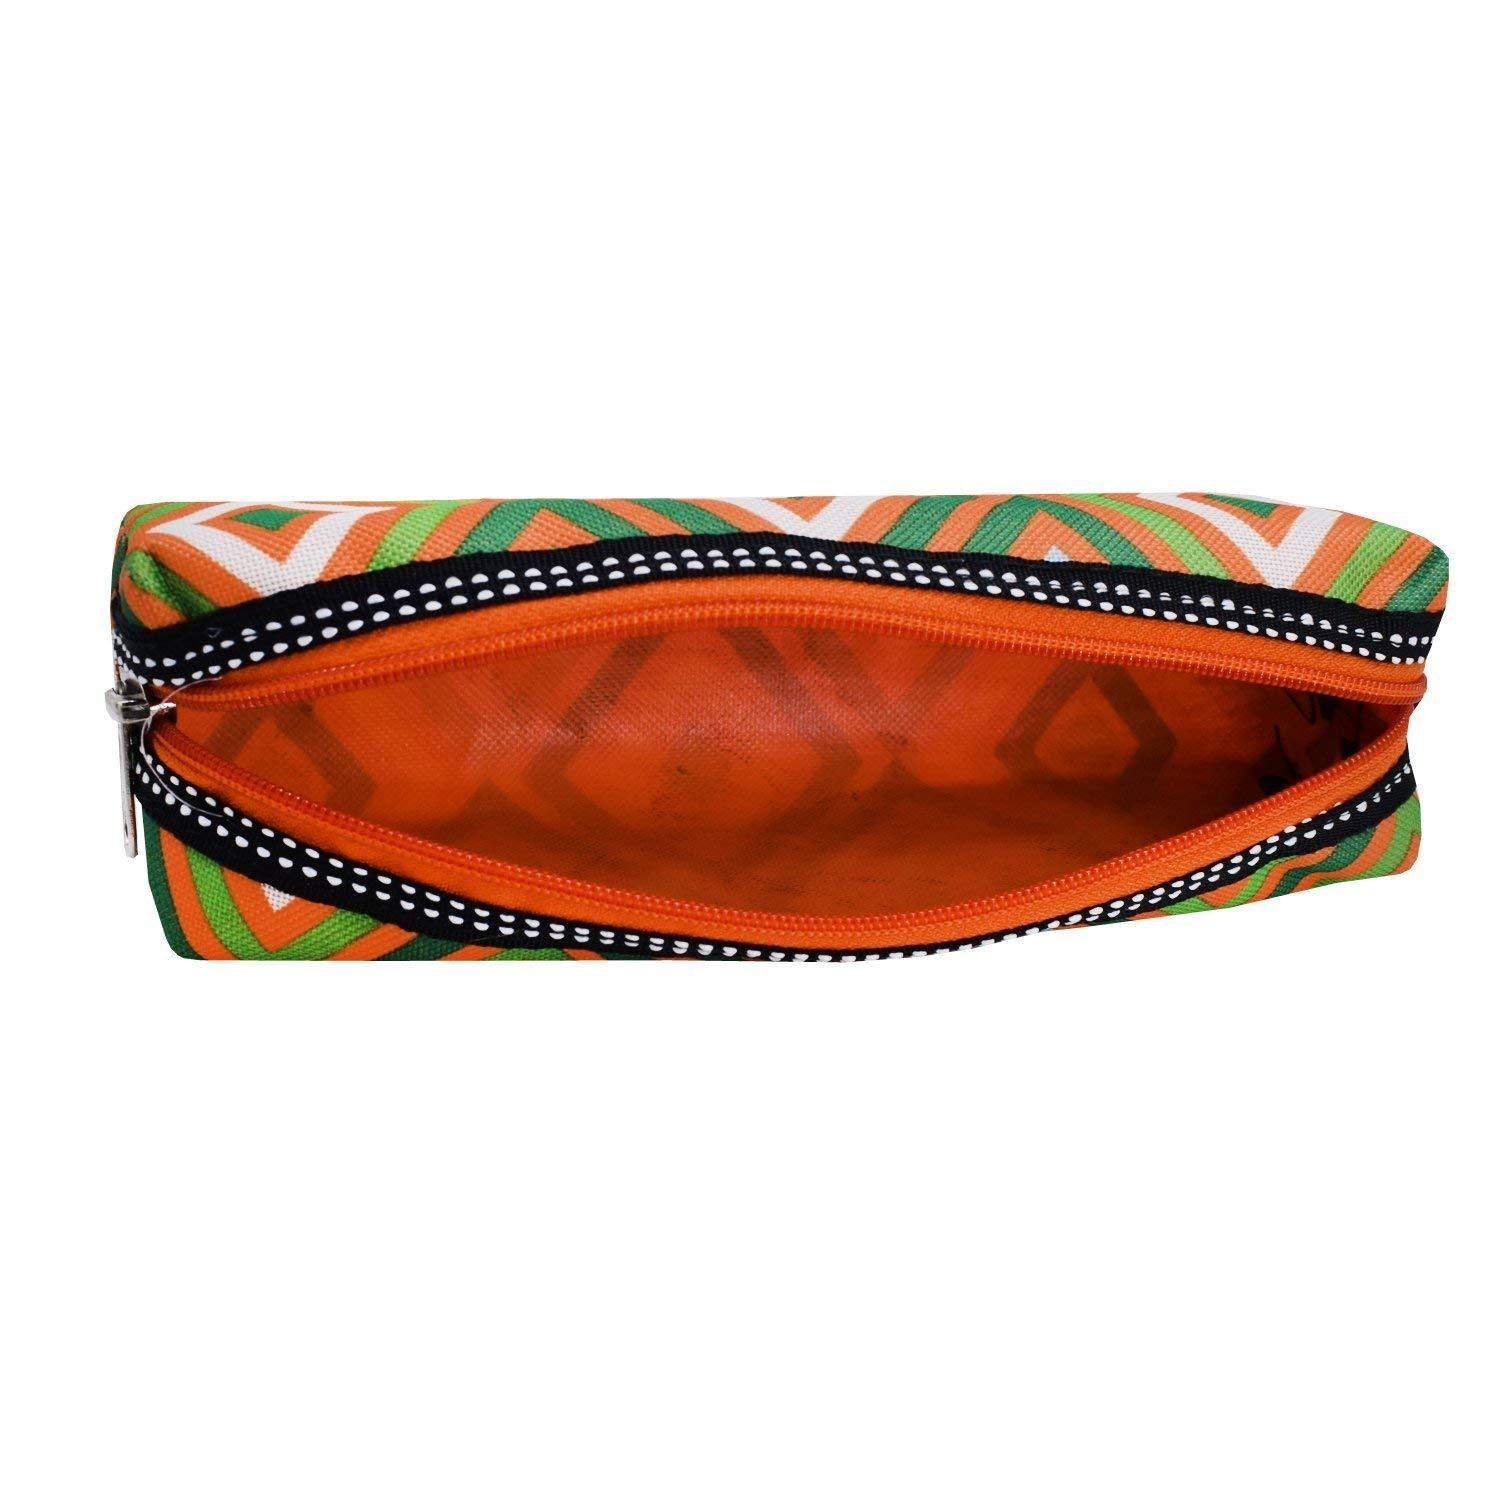 Multi Purpose Stationery Pouch Pencil Pouch (Orange) - Bagaholics Gift